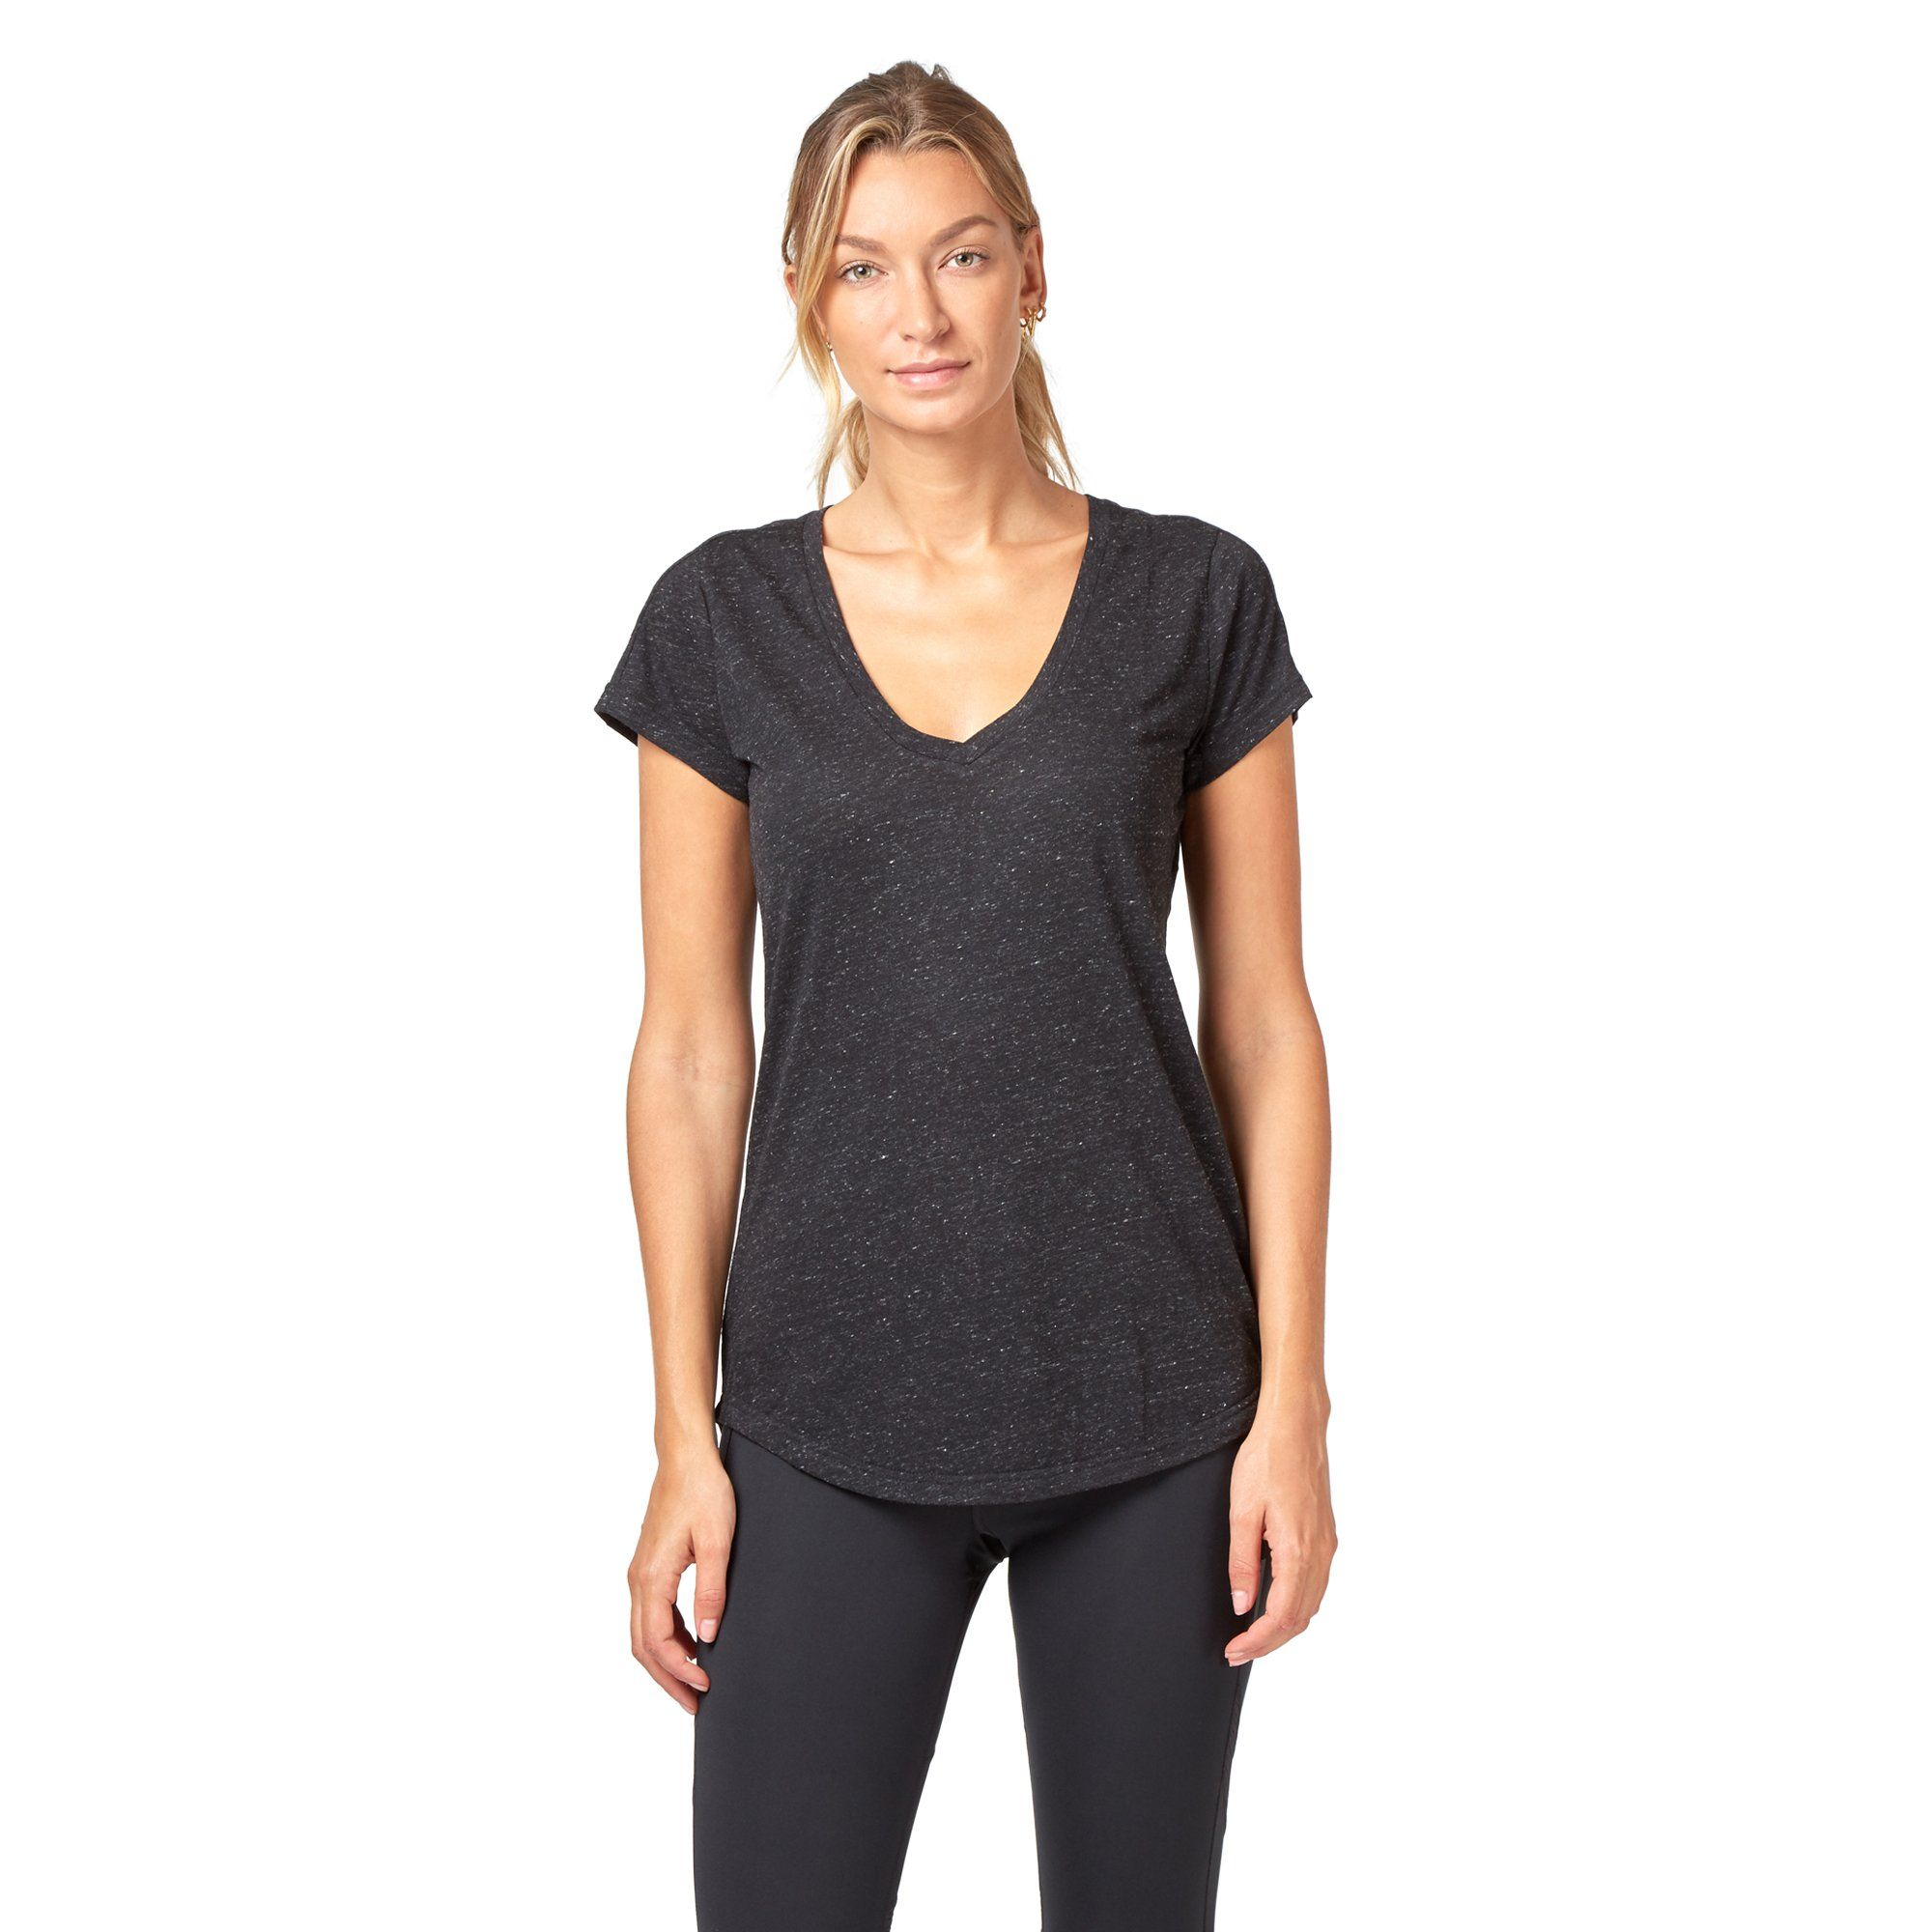 Adidas Women's ID Winners Tee - Black SportsPower Geelong  (2012420472891)